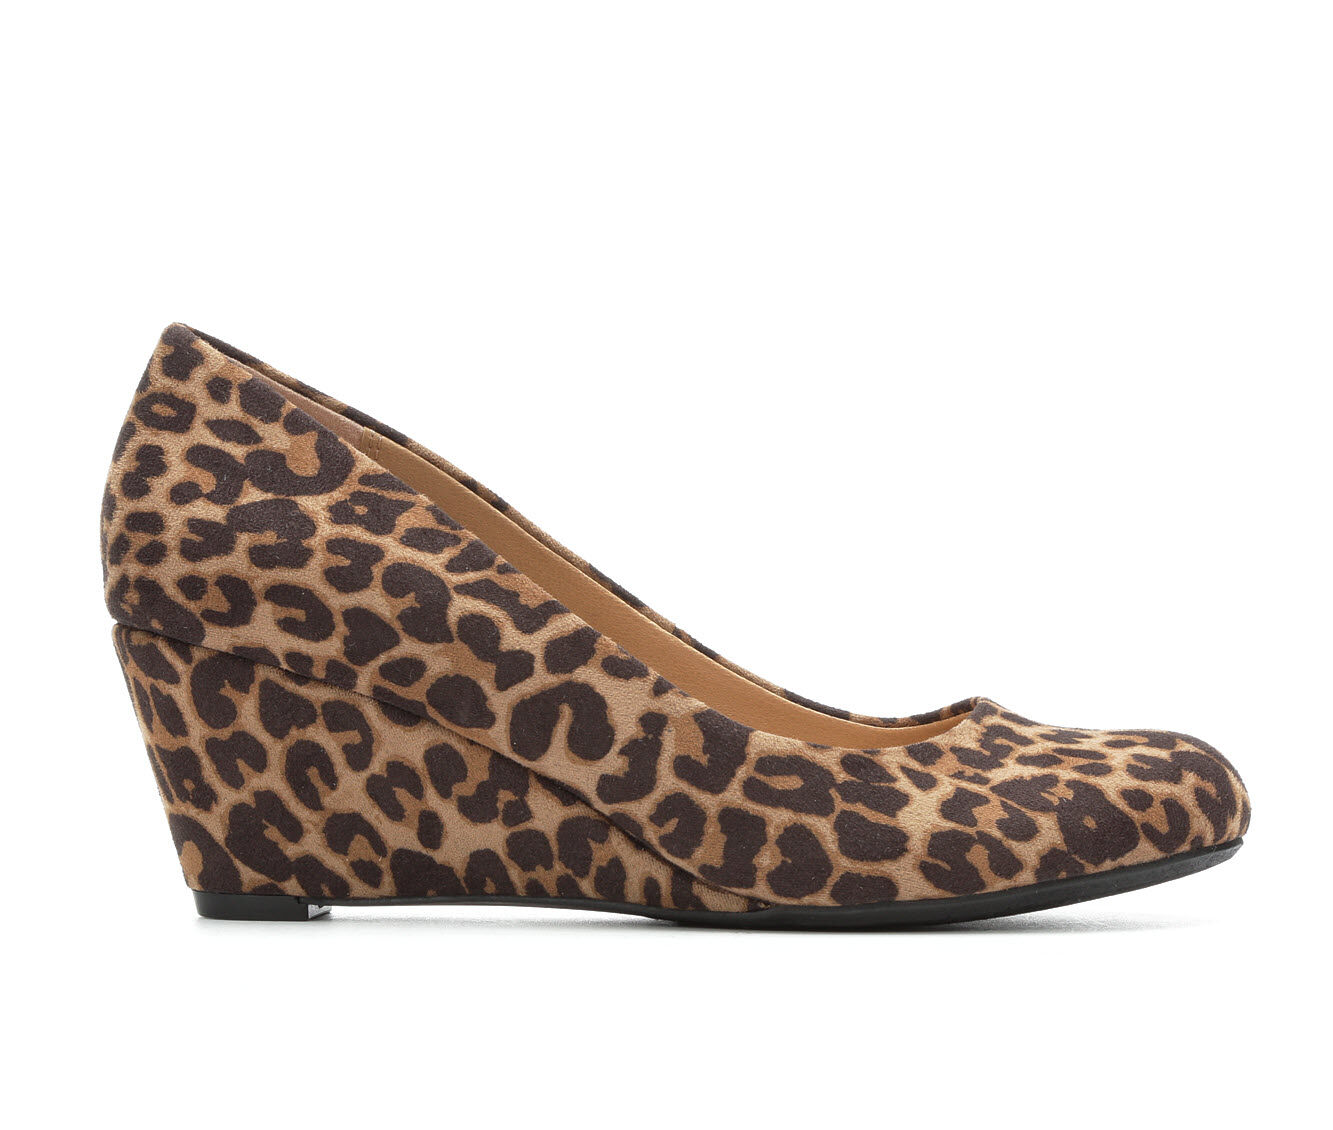 Women's David Aaron Traci Wedges Leopard